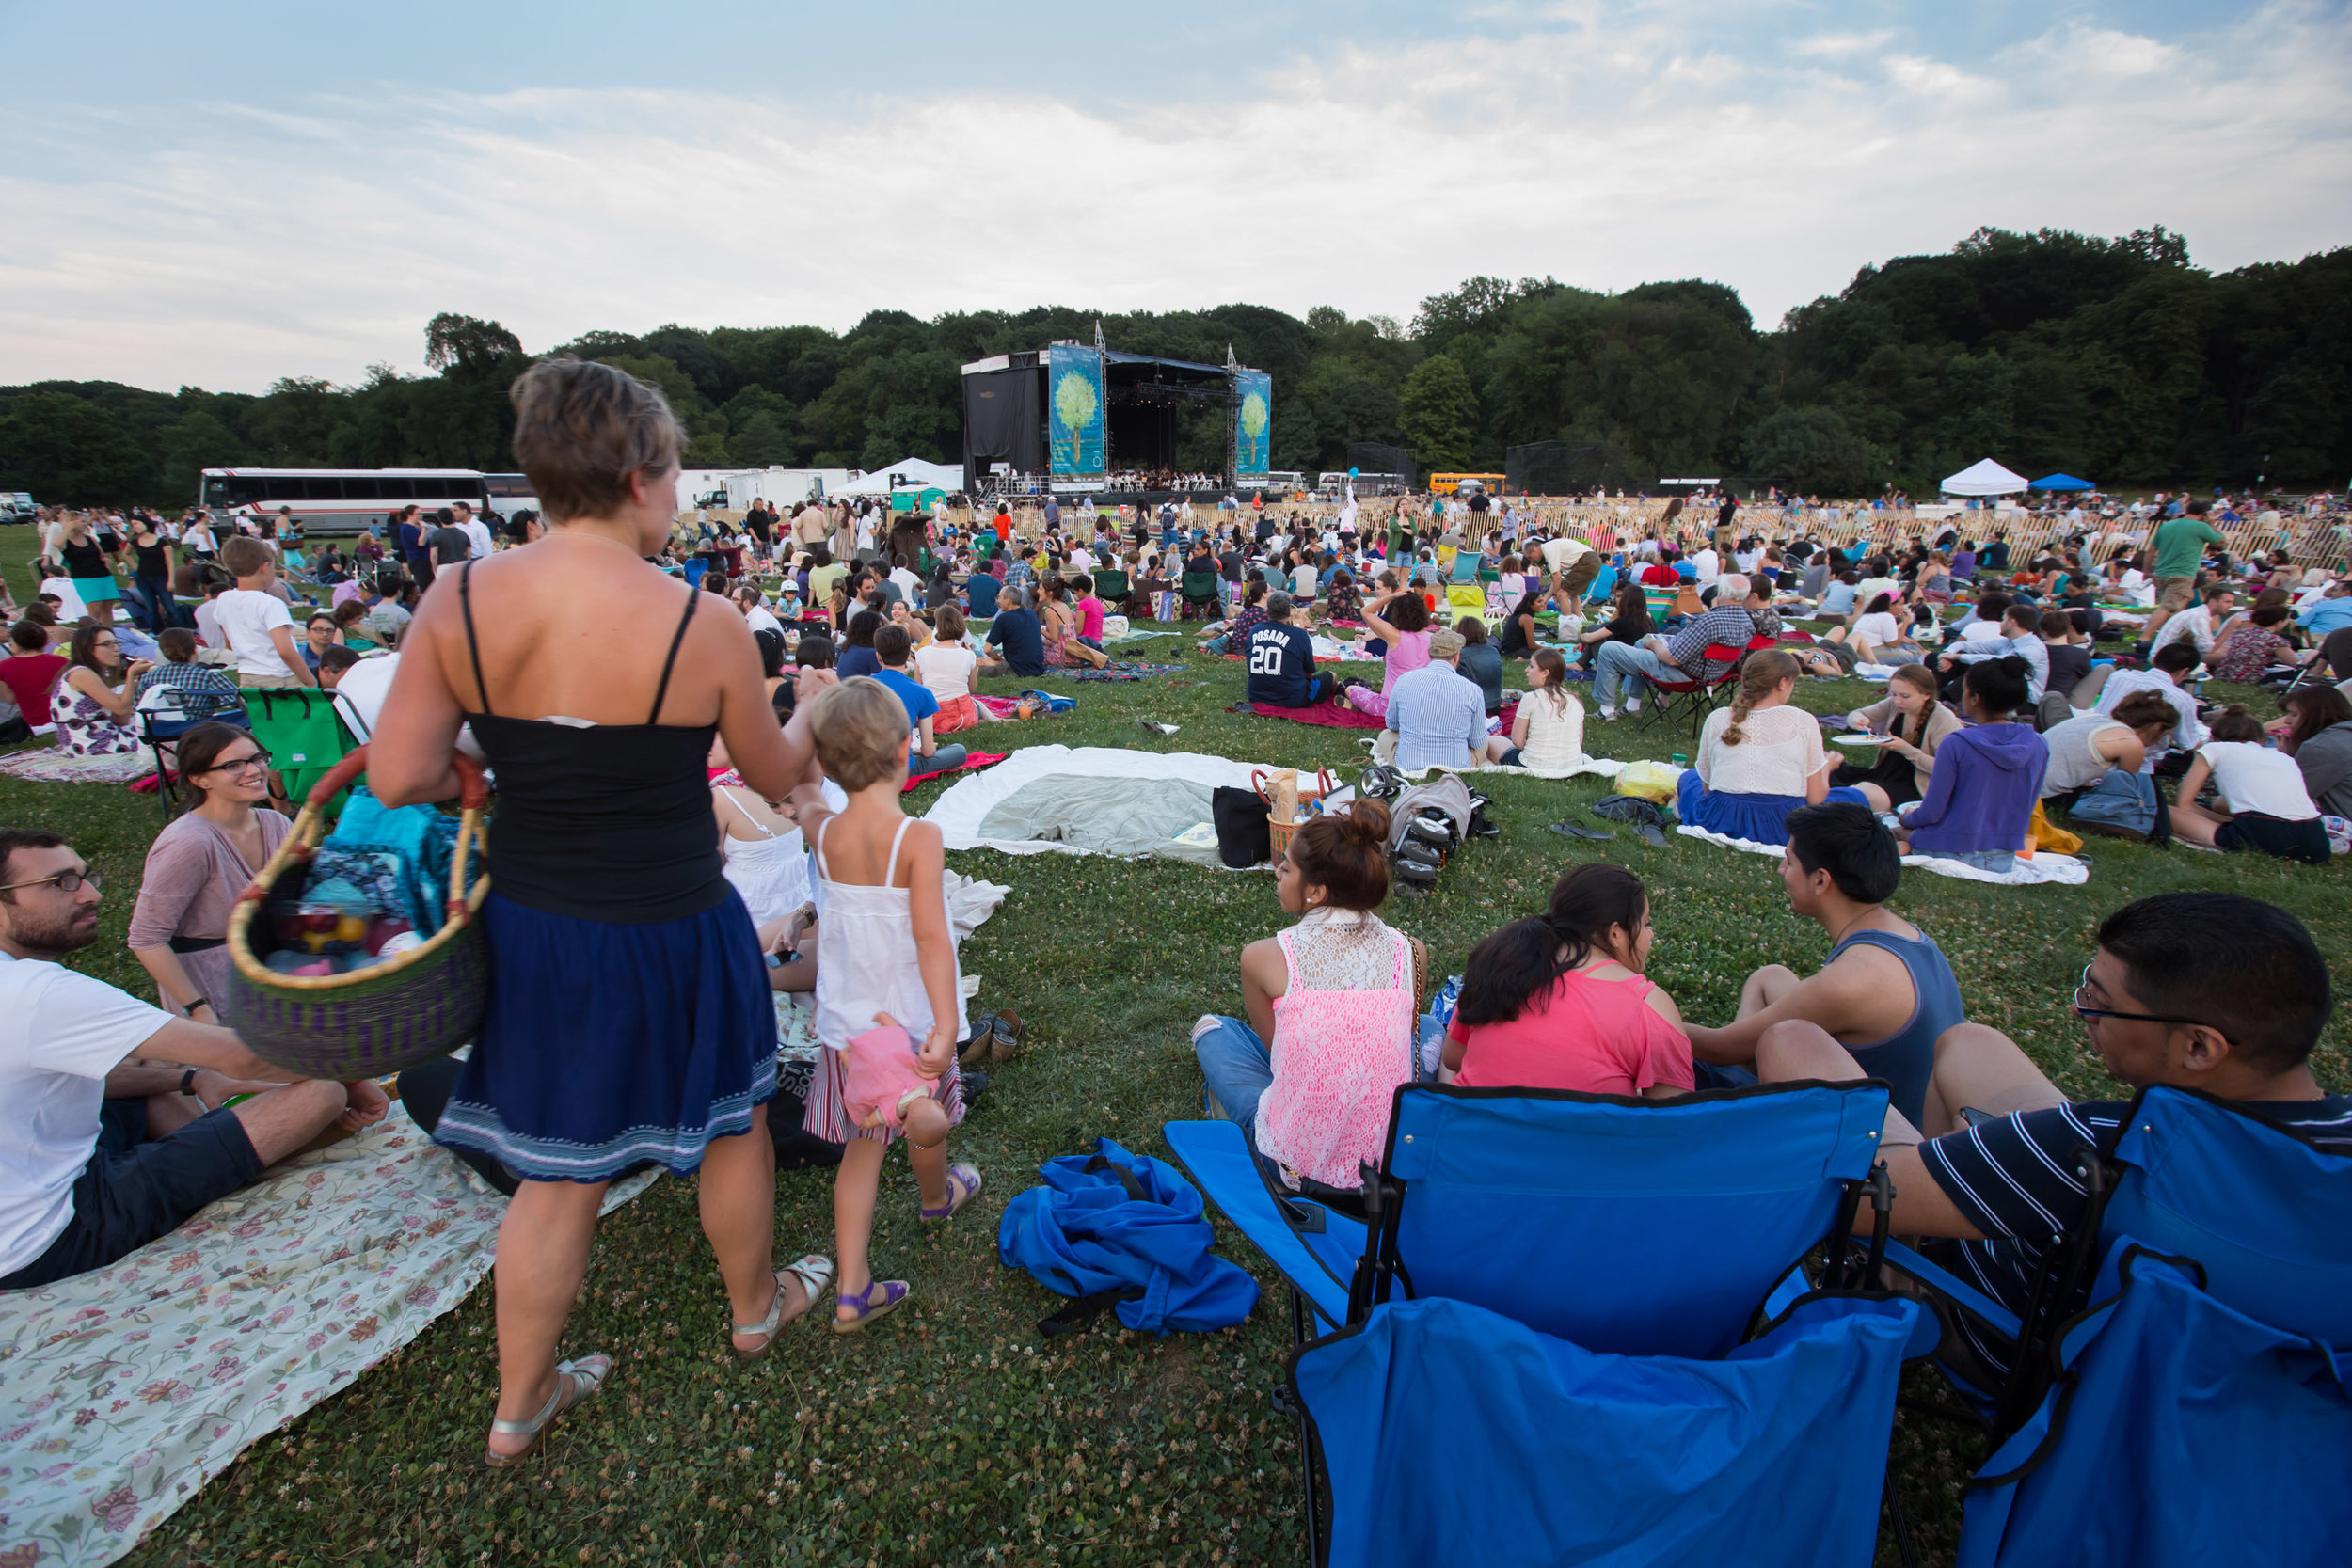 Alan Gilbert made the Concerts in the Parks a regular feature of his summer schedule to the delight of New Yorkers and visitors to the city, who flocked to the parks (including Brooklyn's Prospect Park, seen here in 2012) to hear him and the Philharmonic perform priceless music, absolutely free — and to picnic, enjoy fireworks, and catch a rare glimpse of the stars.